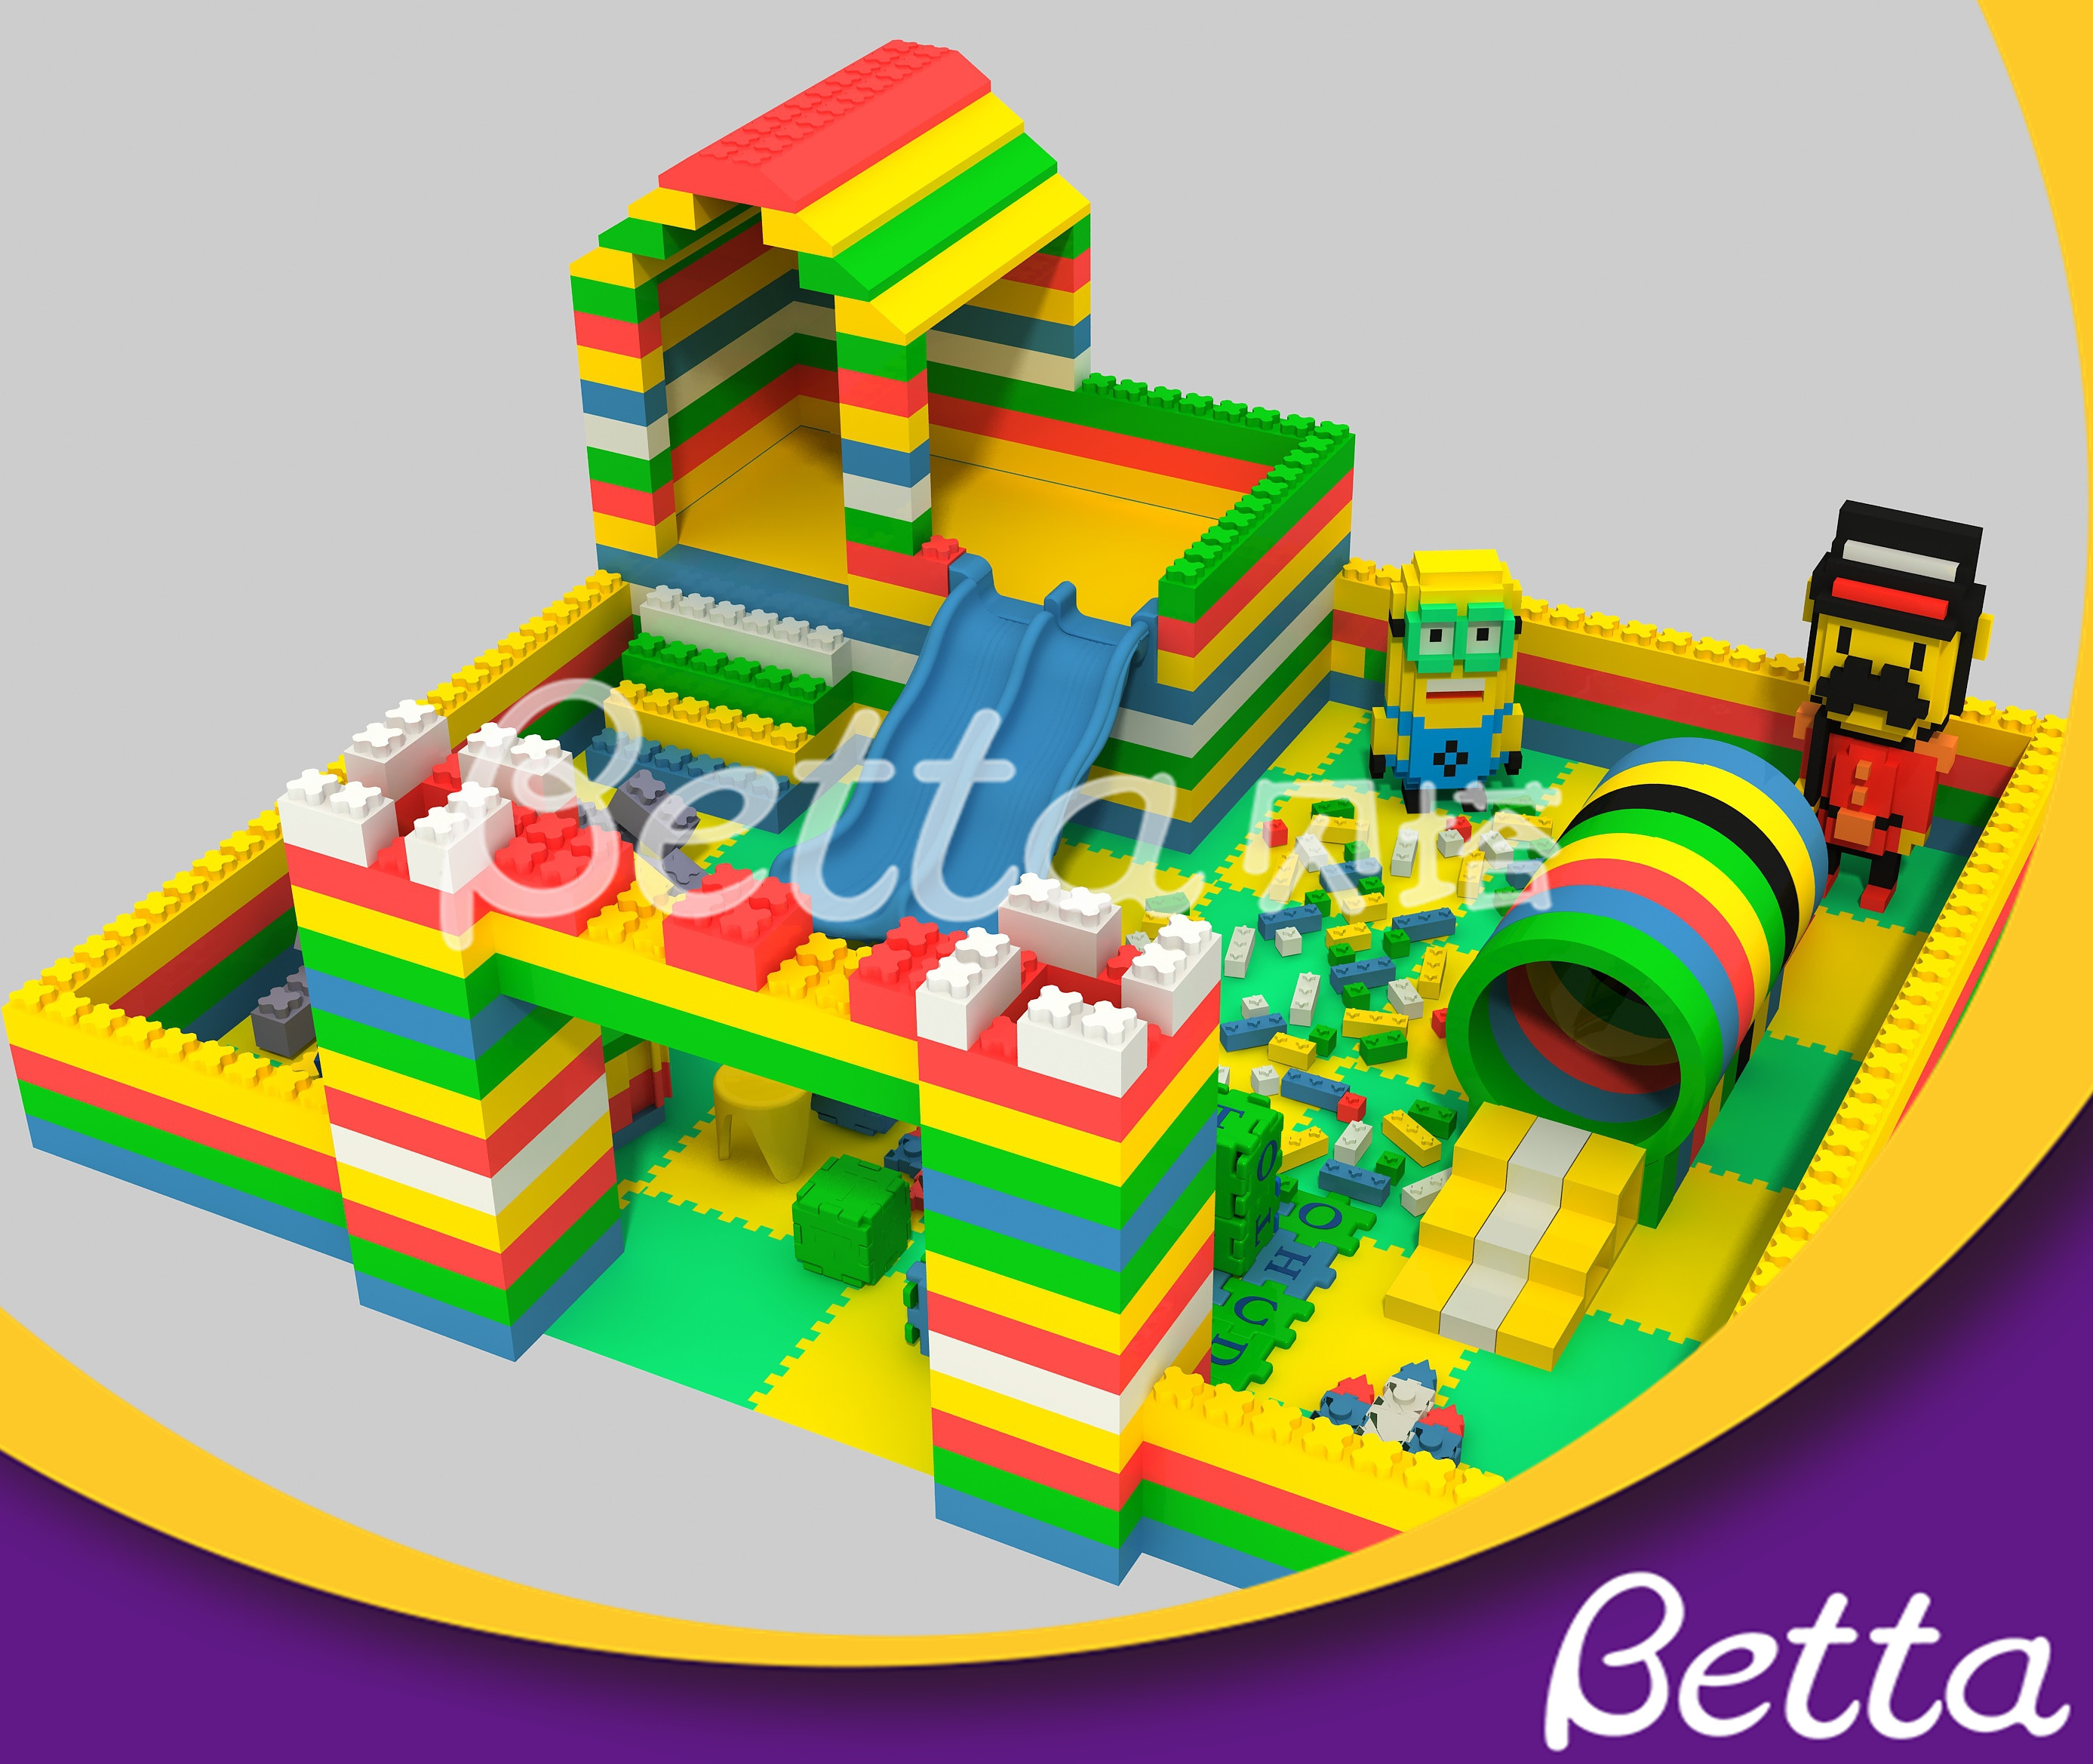 Betta DIY Epp Foam Block Building Educational Toy for Kids Indoor Playground